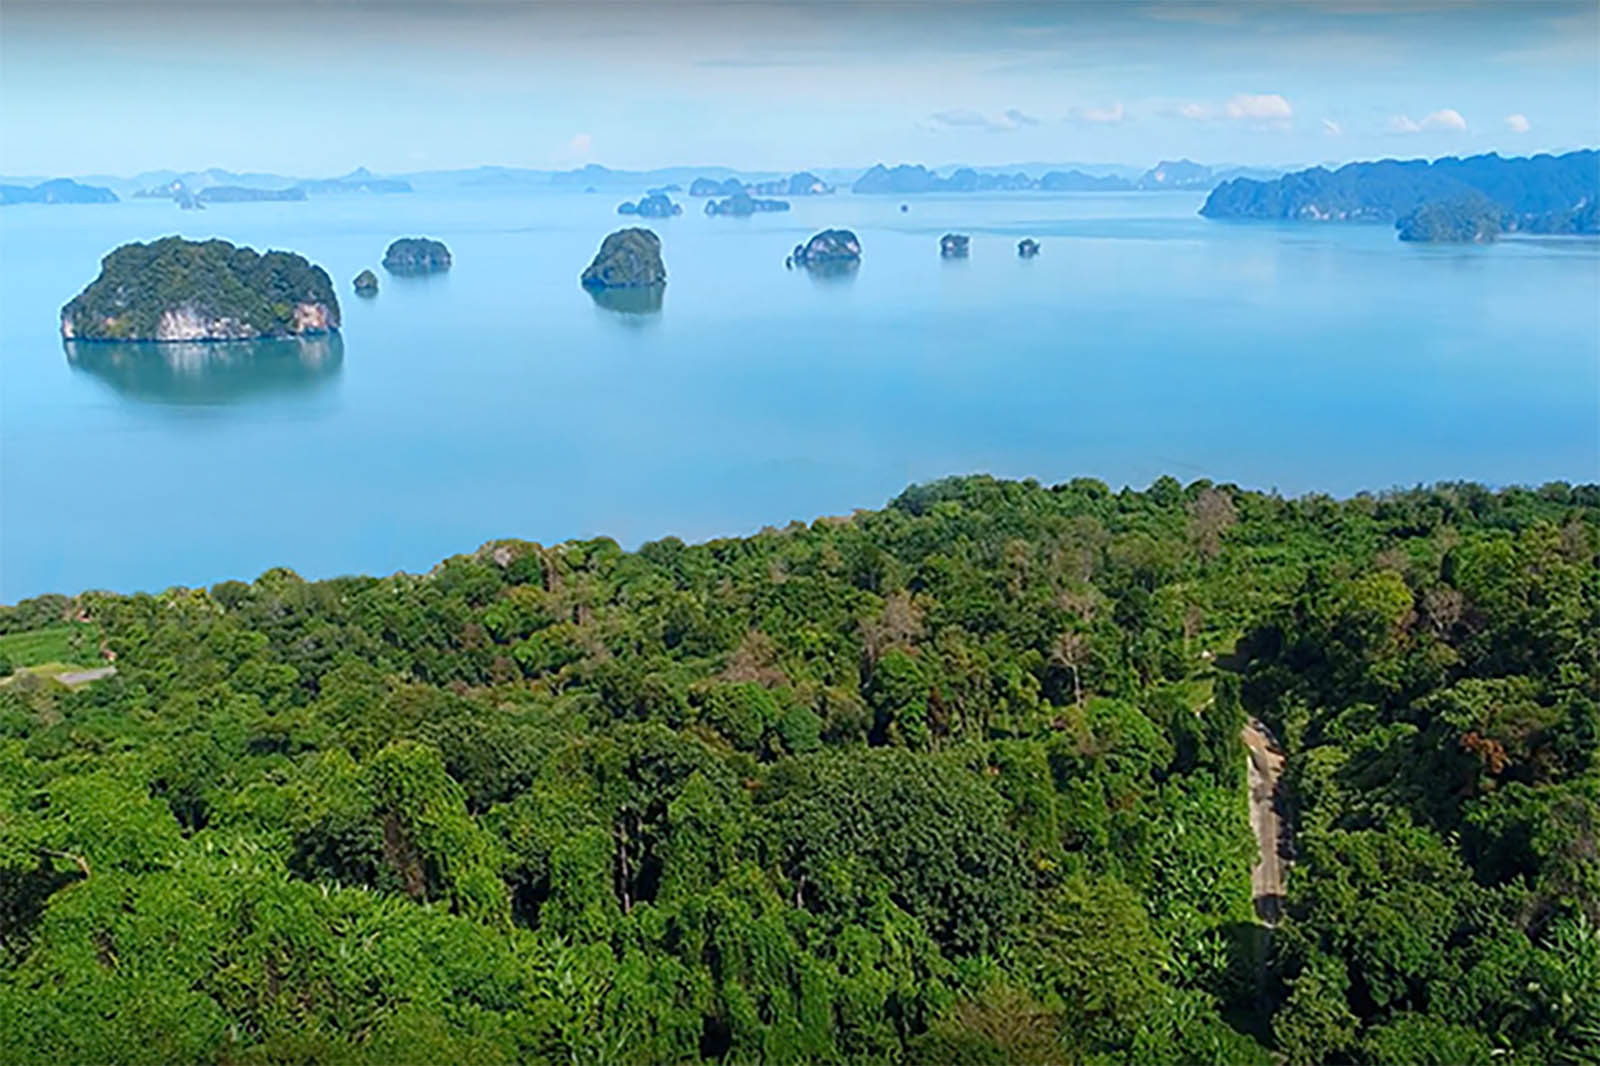 for sale - 9.2 Rai Sea View Land for Sale with Incredible Views - Ao Tha Lane, Krabi